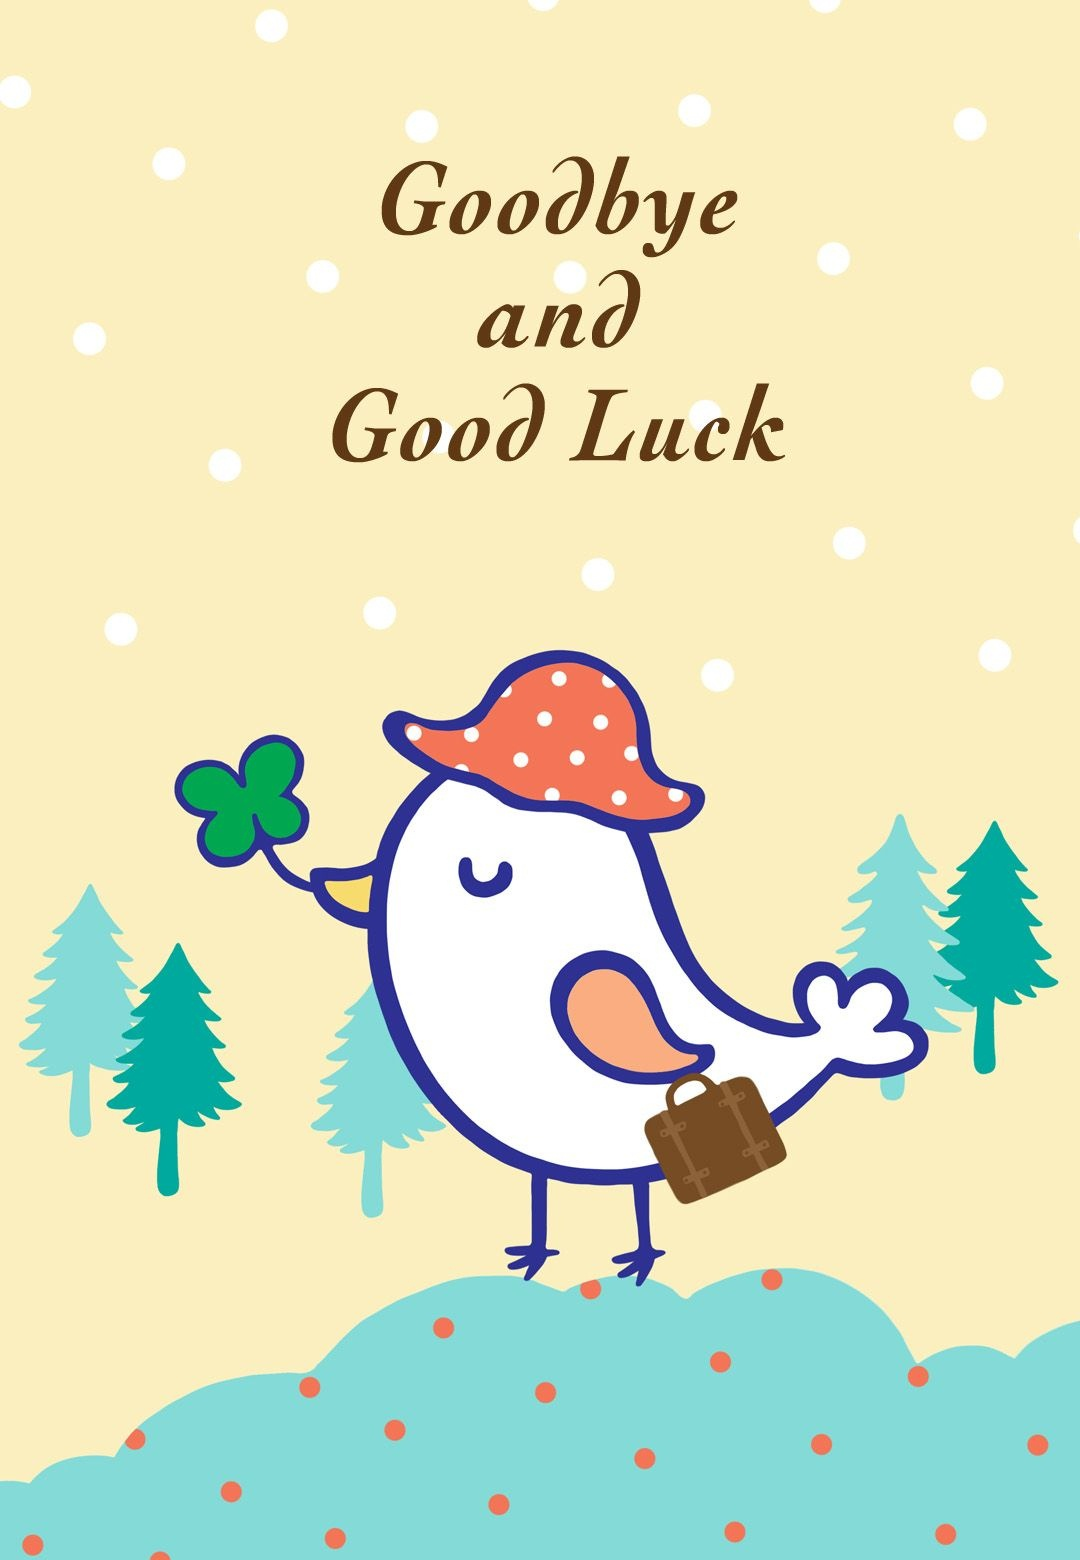 Free Printable Goodbye And Good Luck Greeting Card | Littlestar - Free Printable Good Luck Cards